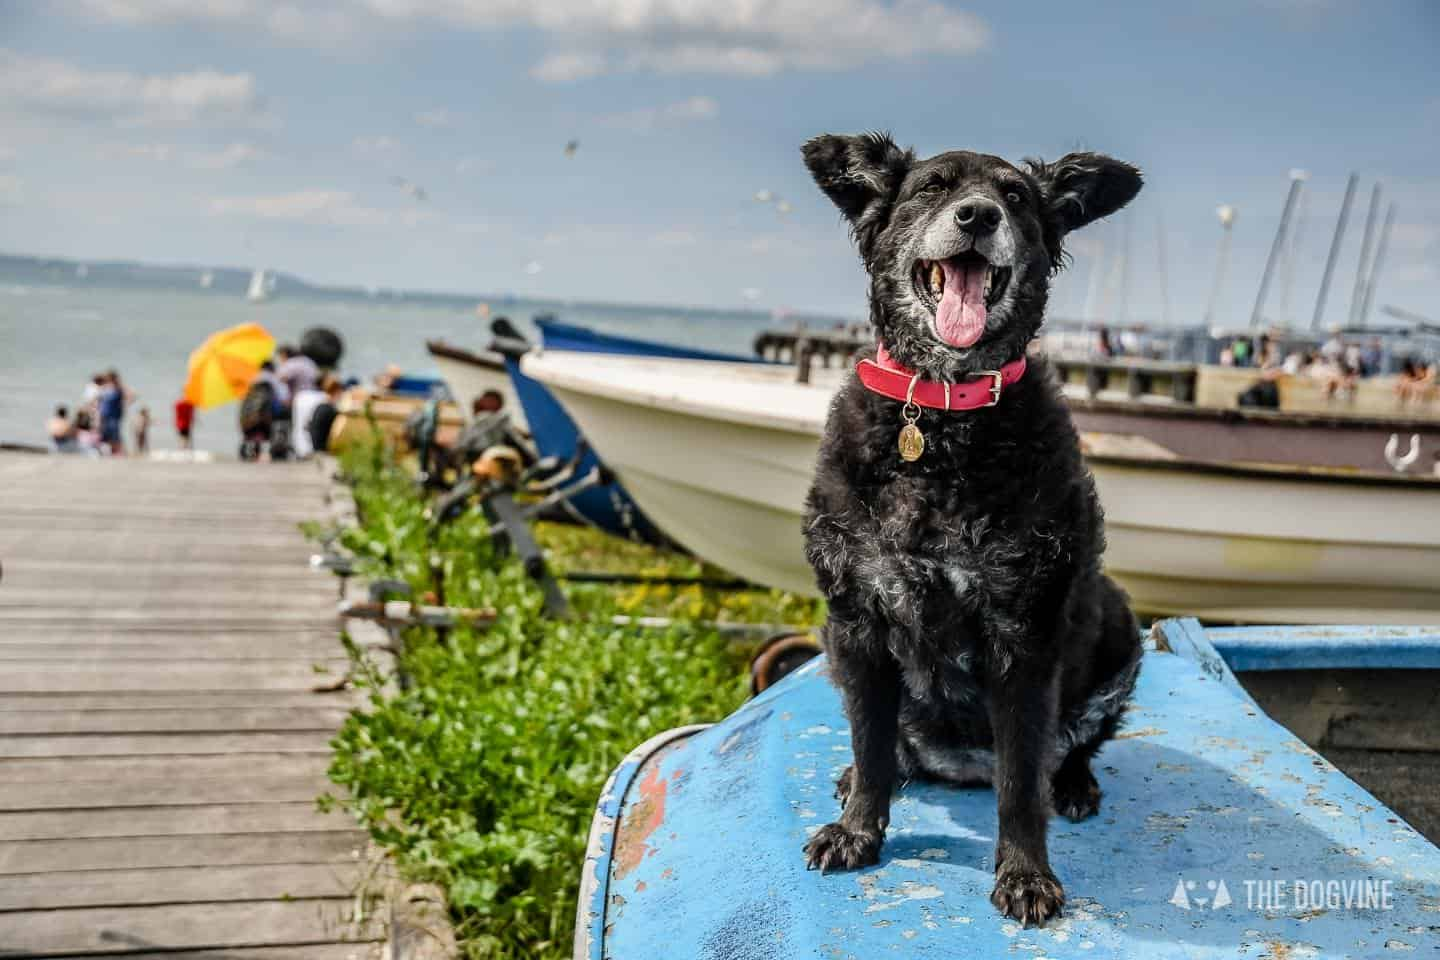 Dogs Day Out With Fetch & Follow On Tour In Dog-Friendly Whitstable 10